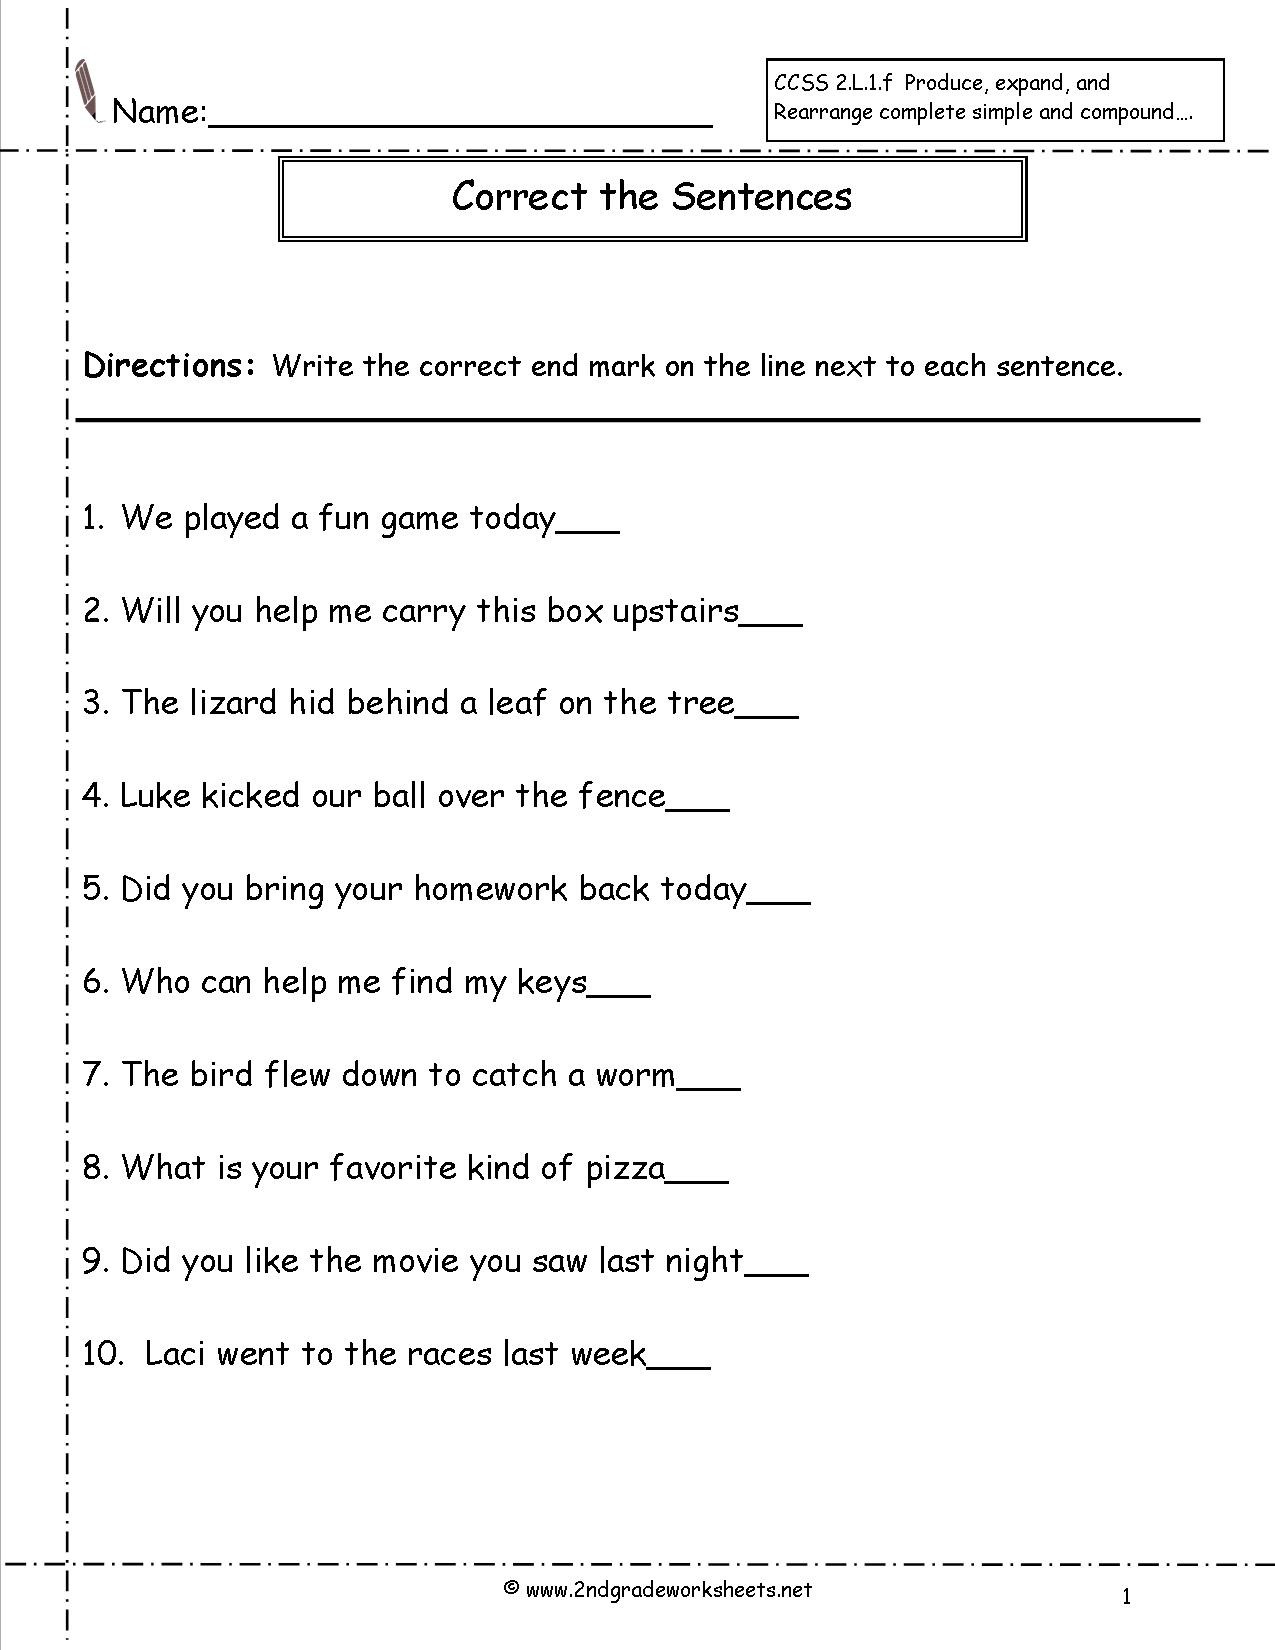 Combining Sentences Worksheets 5th Grade Sentence Correction Worksheets 6th Grade